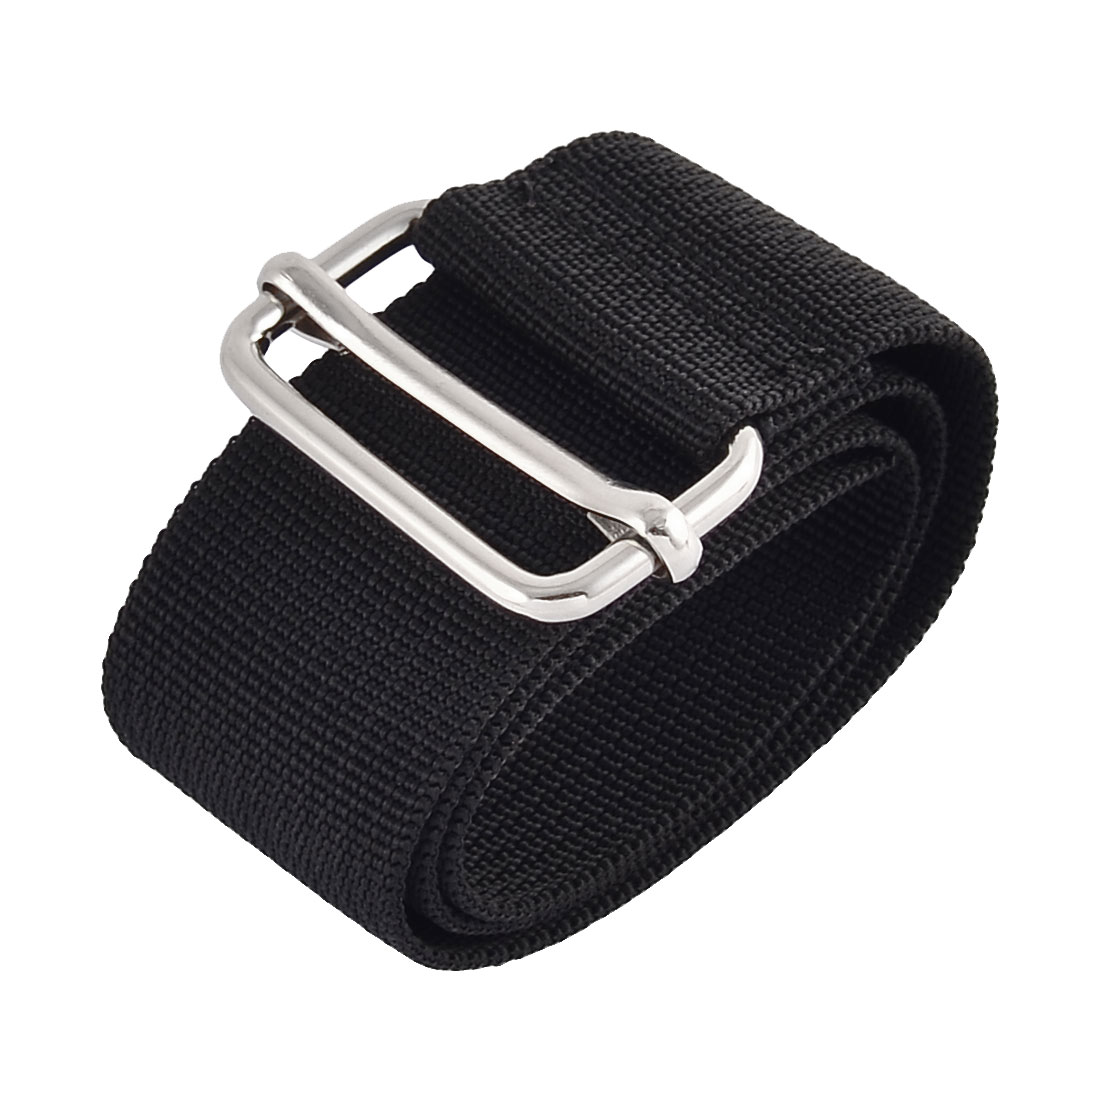 Home Travel Nylon Adjustable Suitcase Luggage Strap Belt Buckle Black 3.8 x 50cm